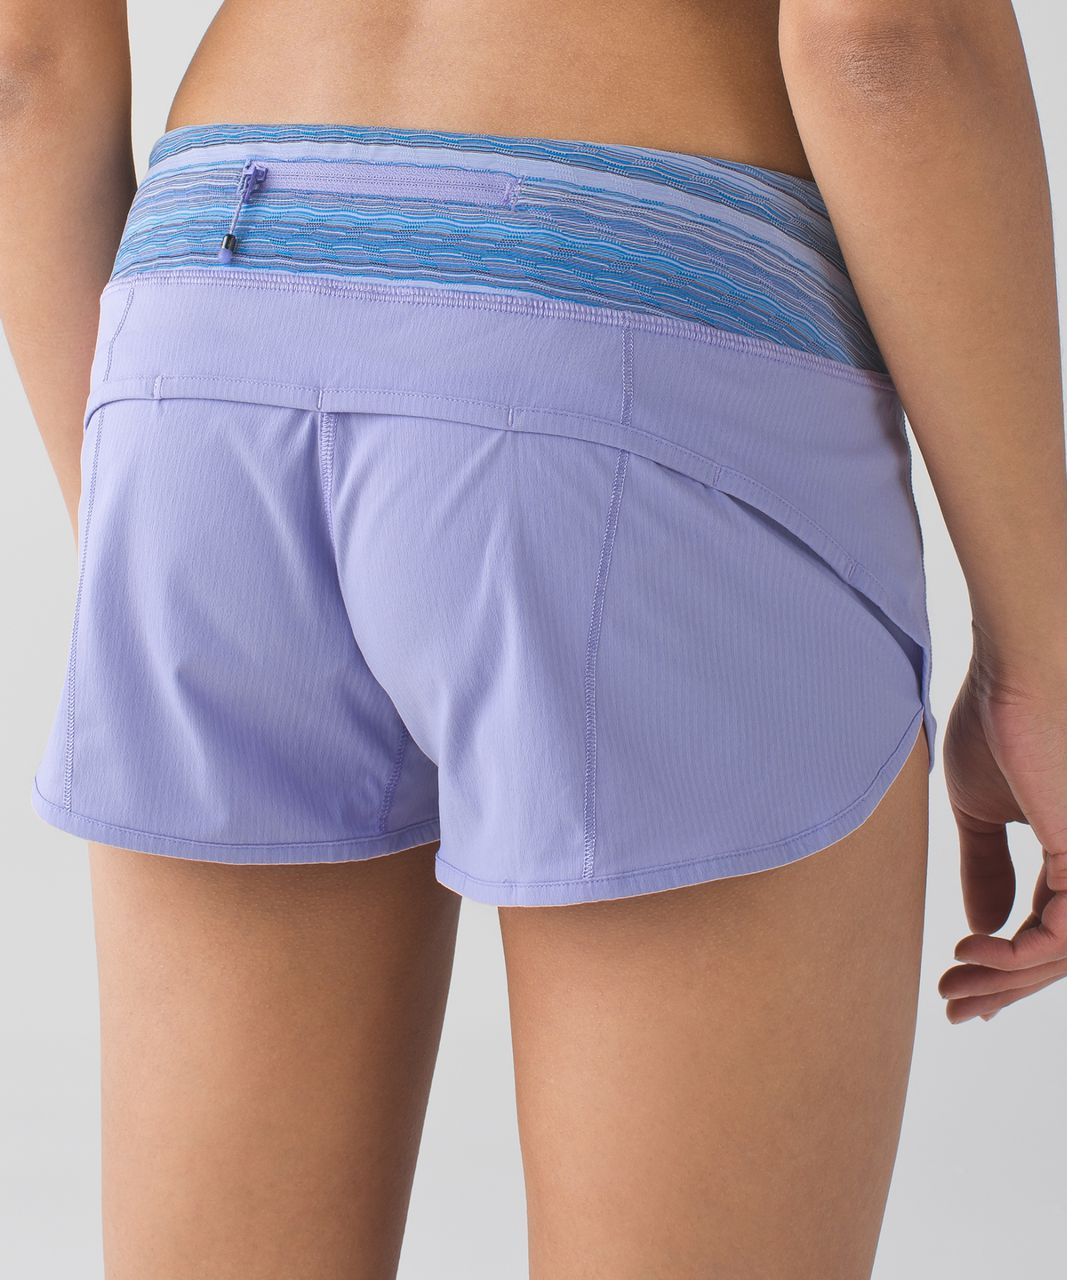 Lululemon Speed Short *4-way Stretch - Lilac / Wave Twist Lilac Caspian Blue